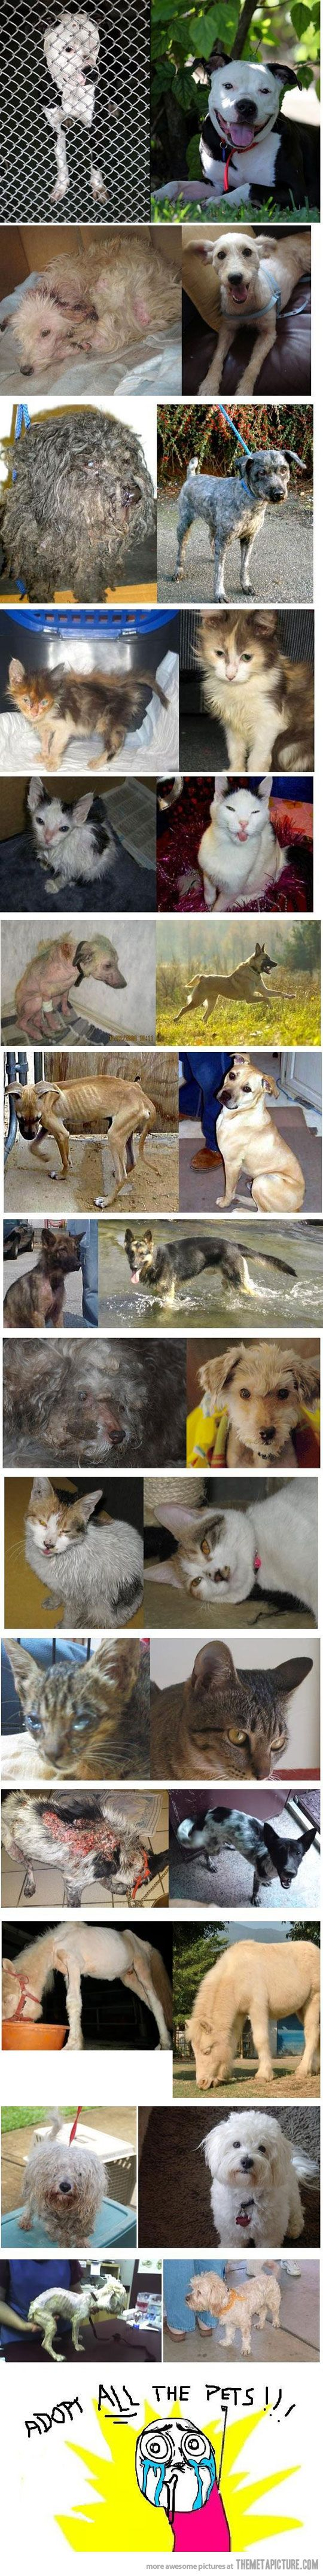 Rescued animals- before and after. Made me sad, then happy, then I went out and adopted all the pets :)